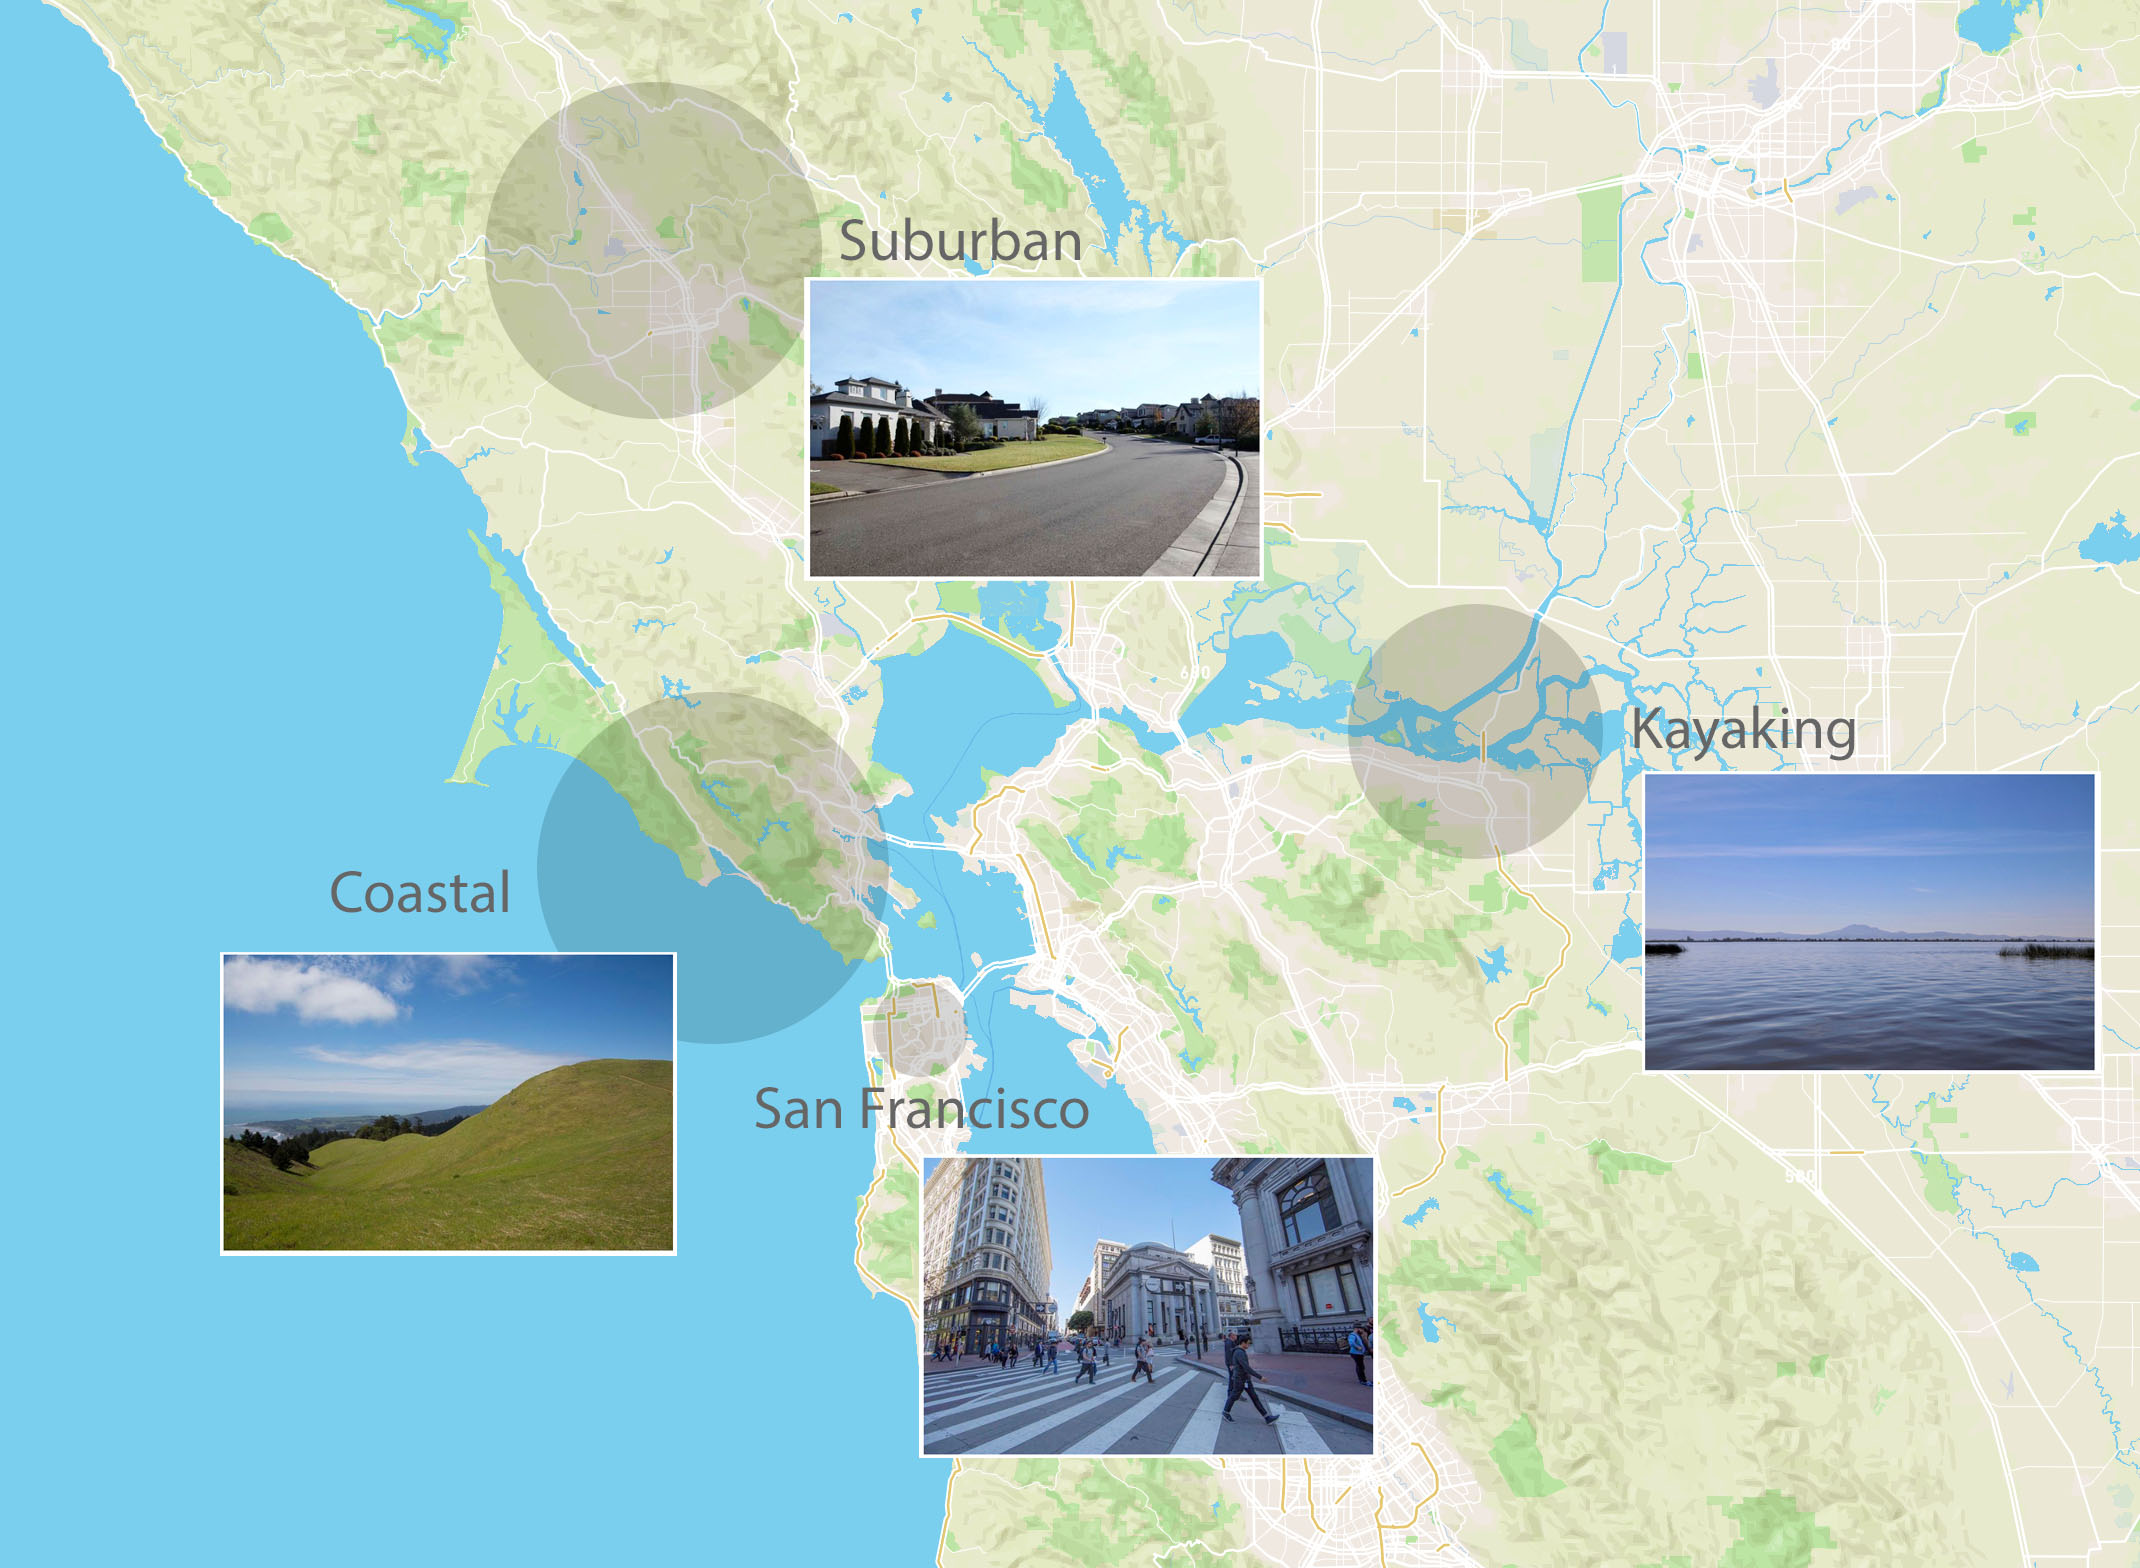 The San Francisco Bay area was a natural fit. We pulled locations from our extensive database in the region and started scouting.